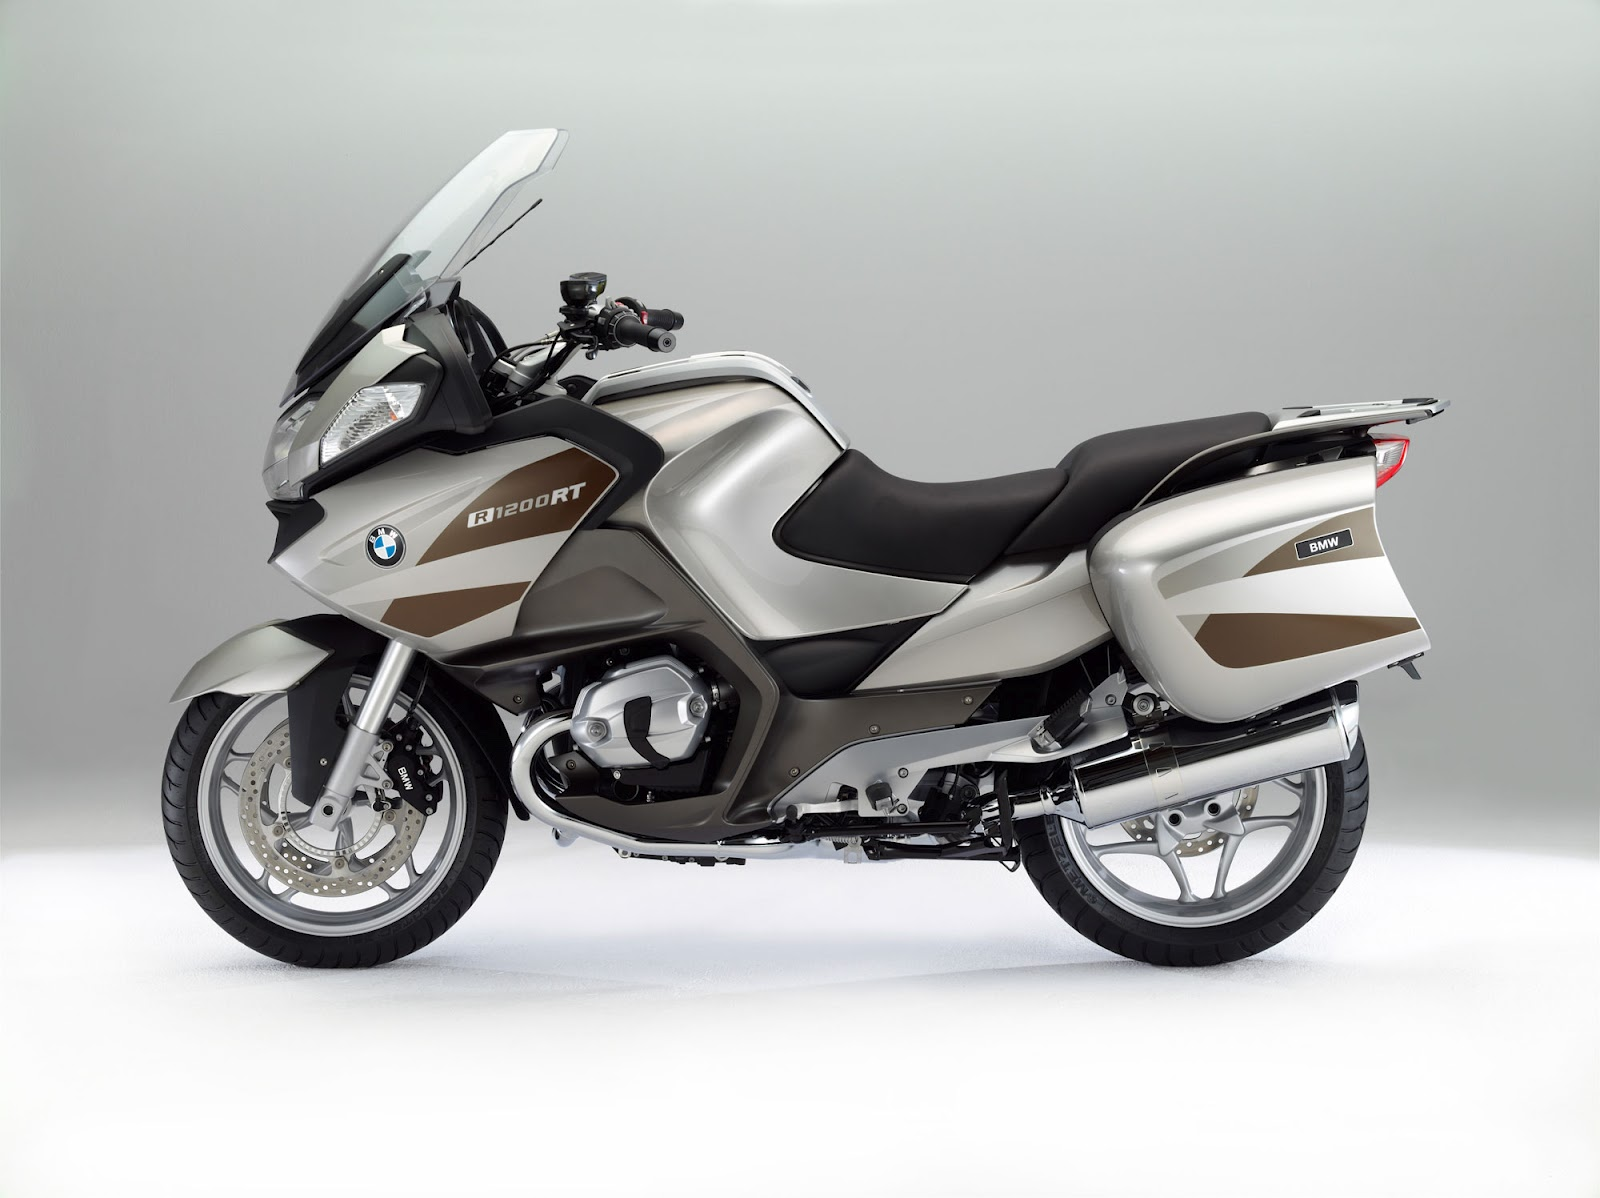 Rt1200 Bmw For Sale